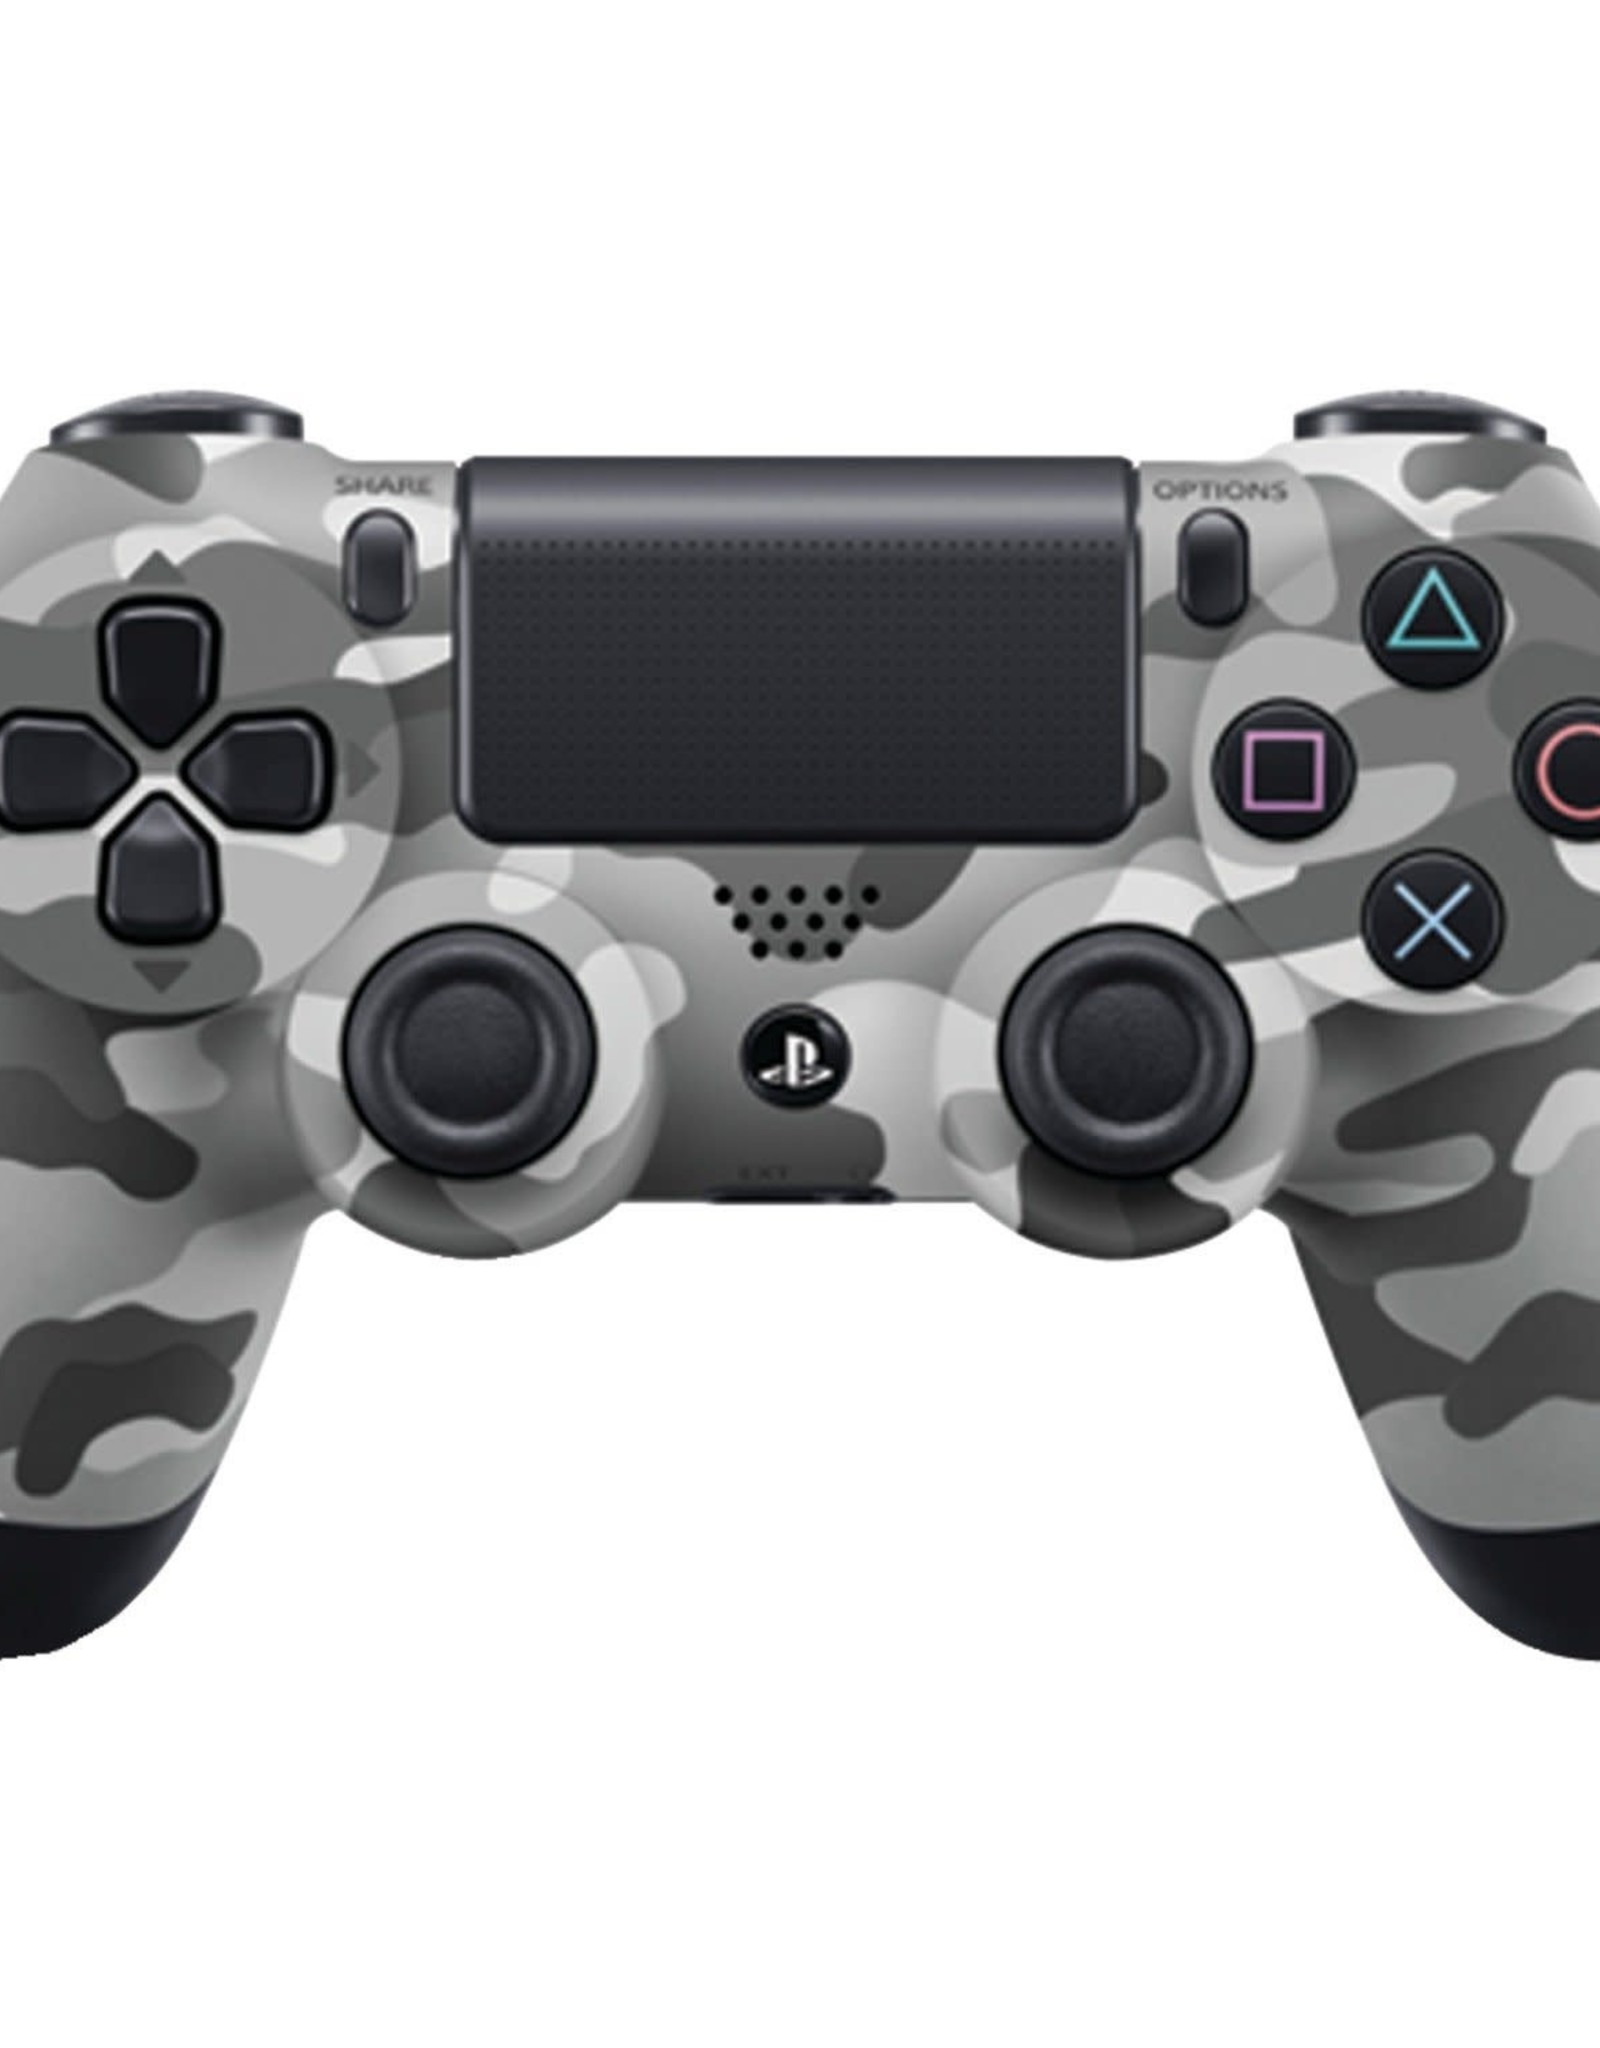 PlayStation DualShock 4 Wireless Controller for PlayStation 4